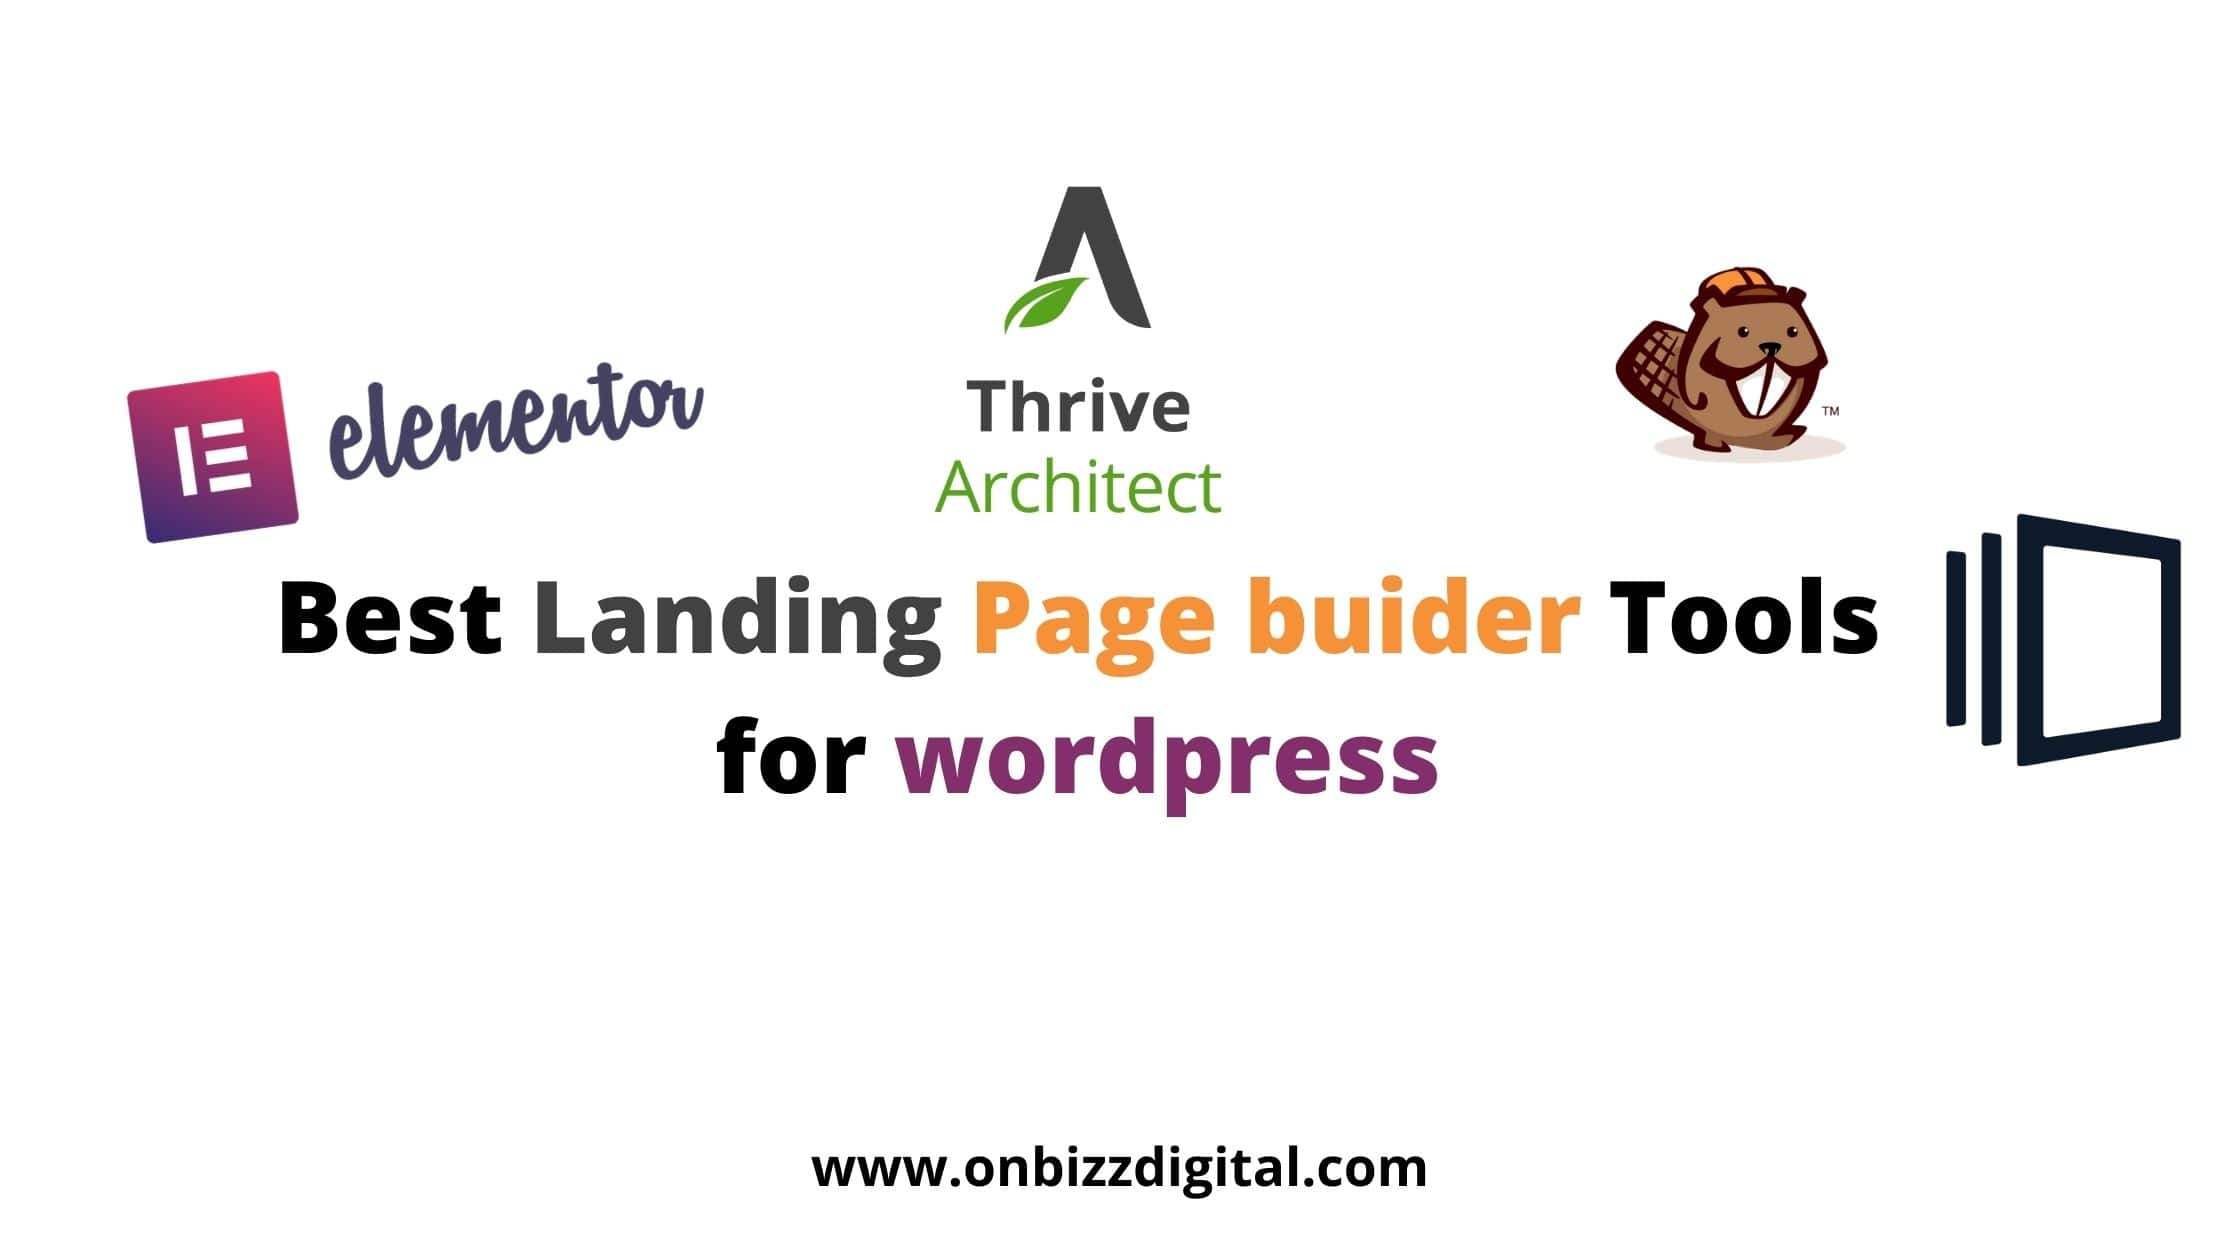 best landing page builder tools for wordpress